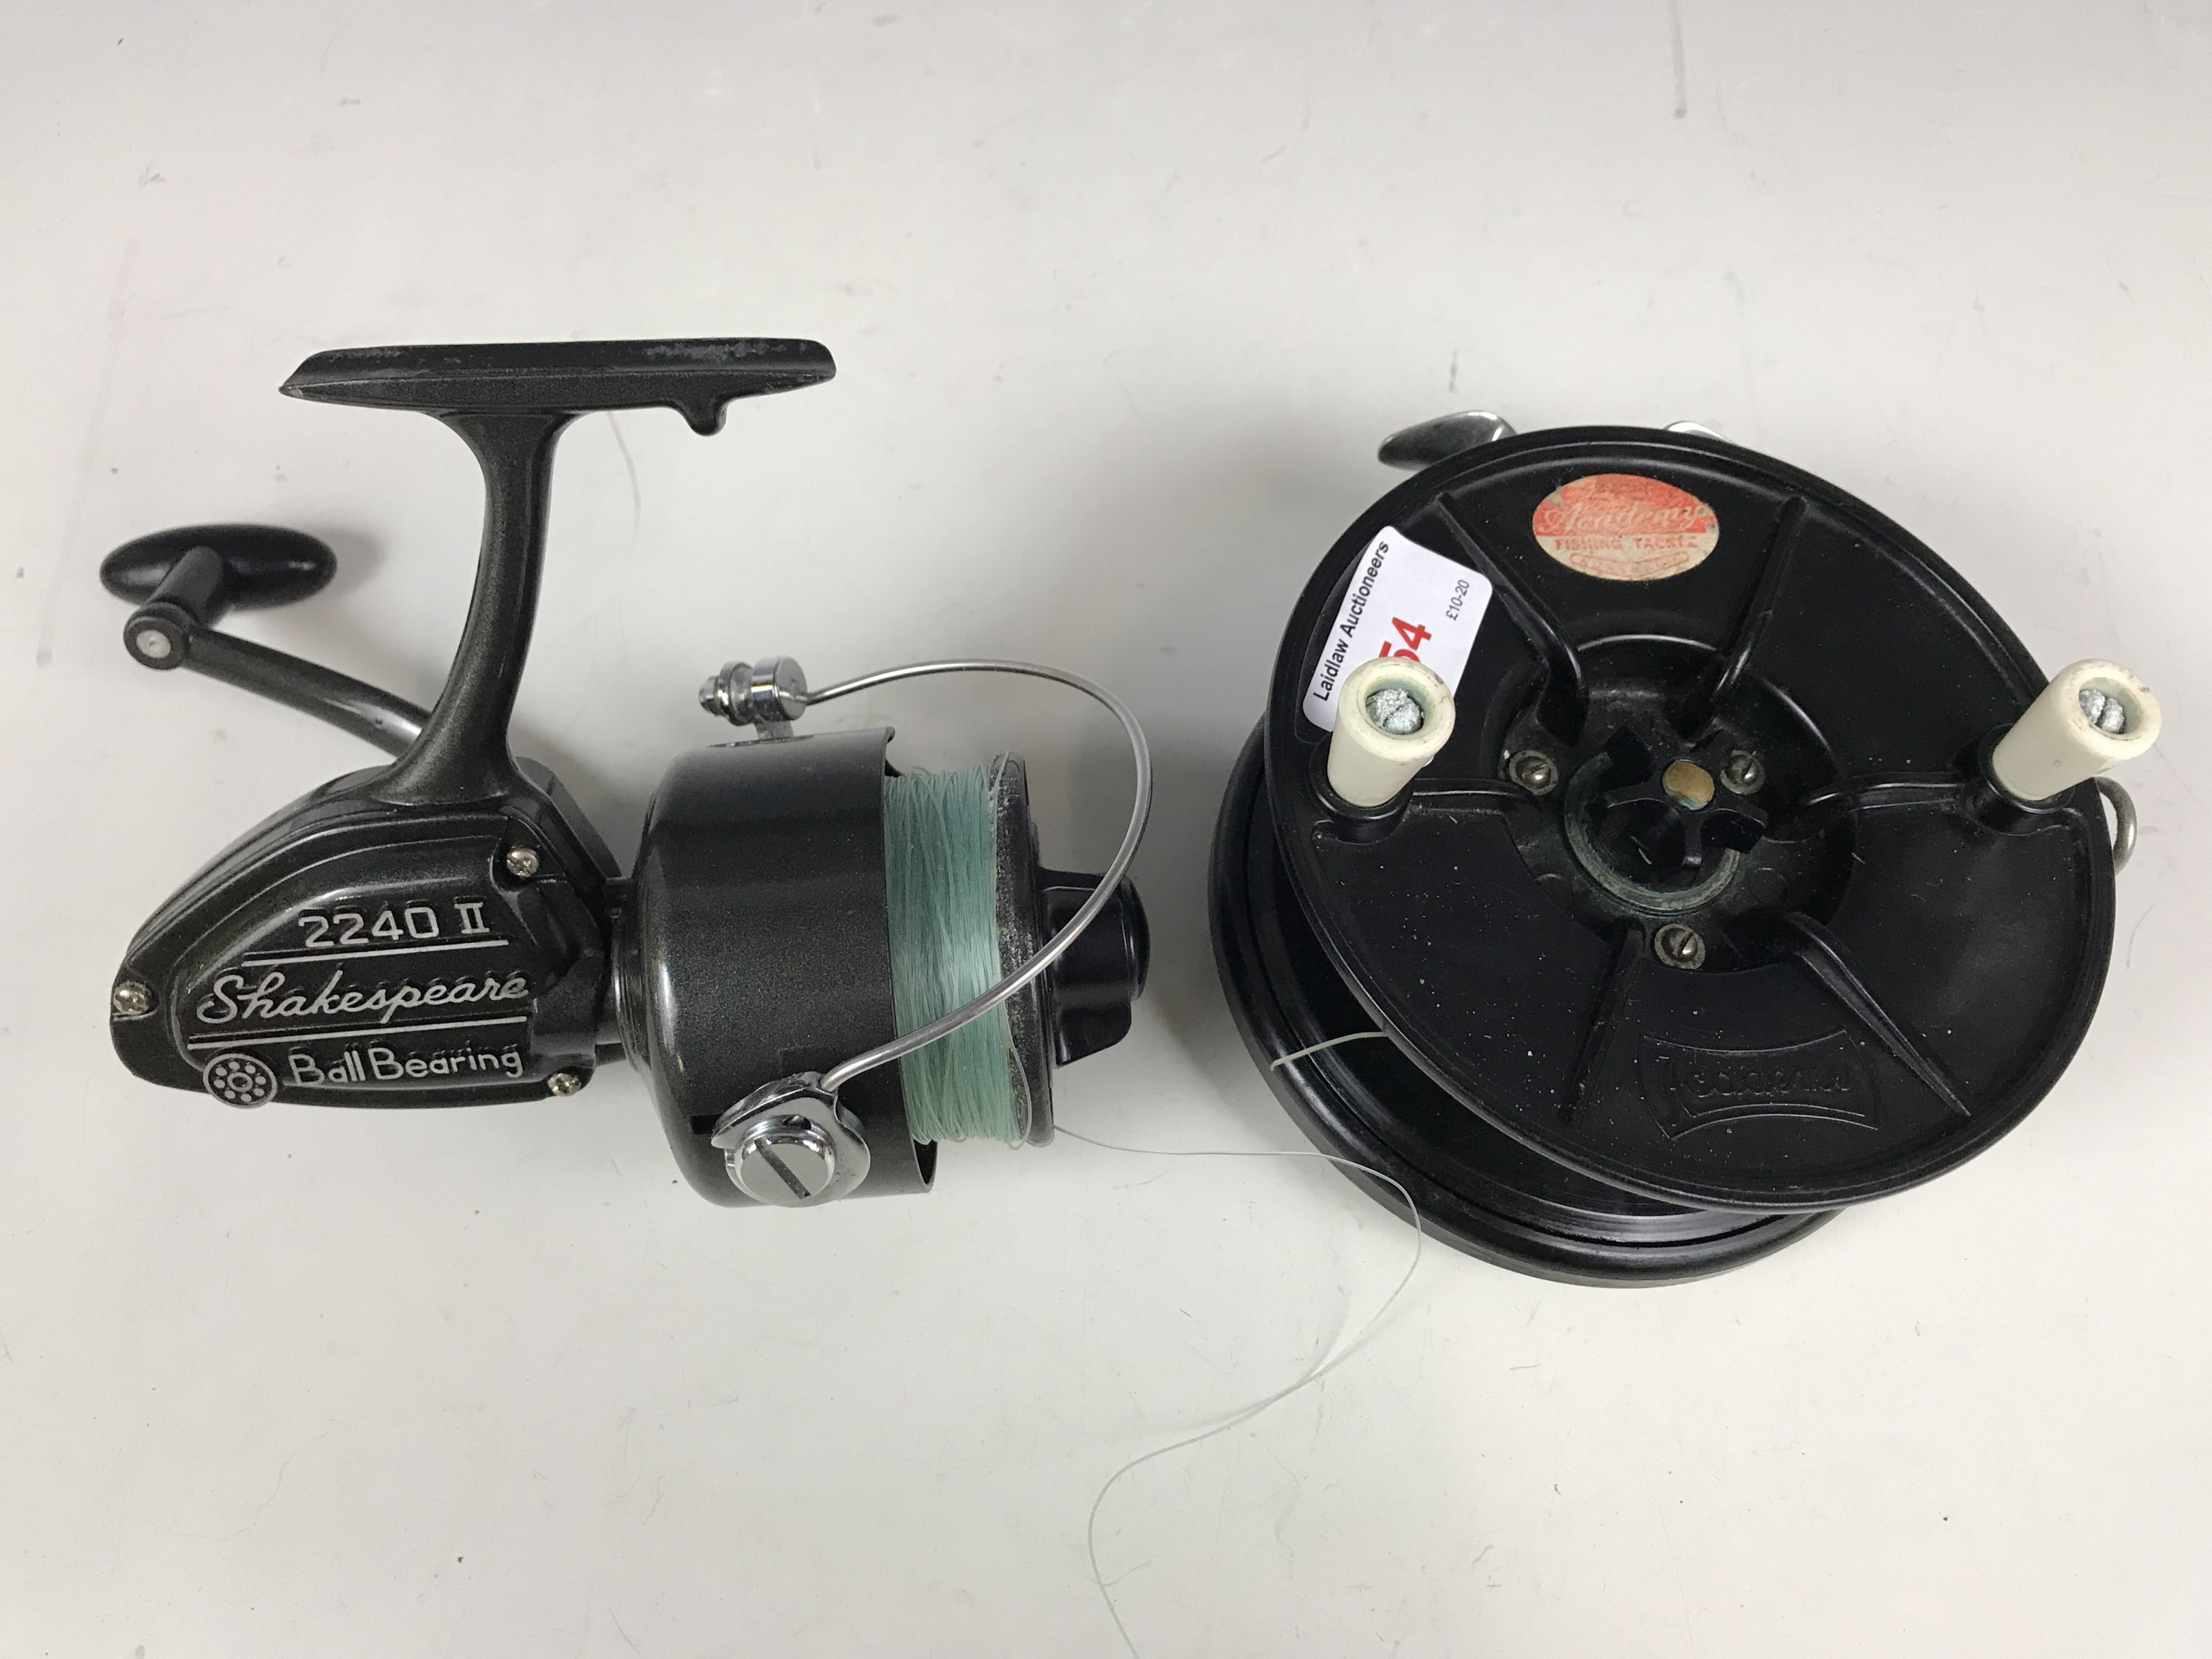 Lot 54 - A vintage Academy centre pin fishing reel together with a Shakespeare 2240 II spinning reel